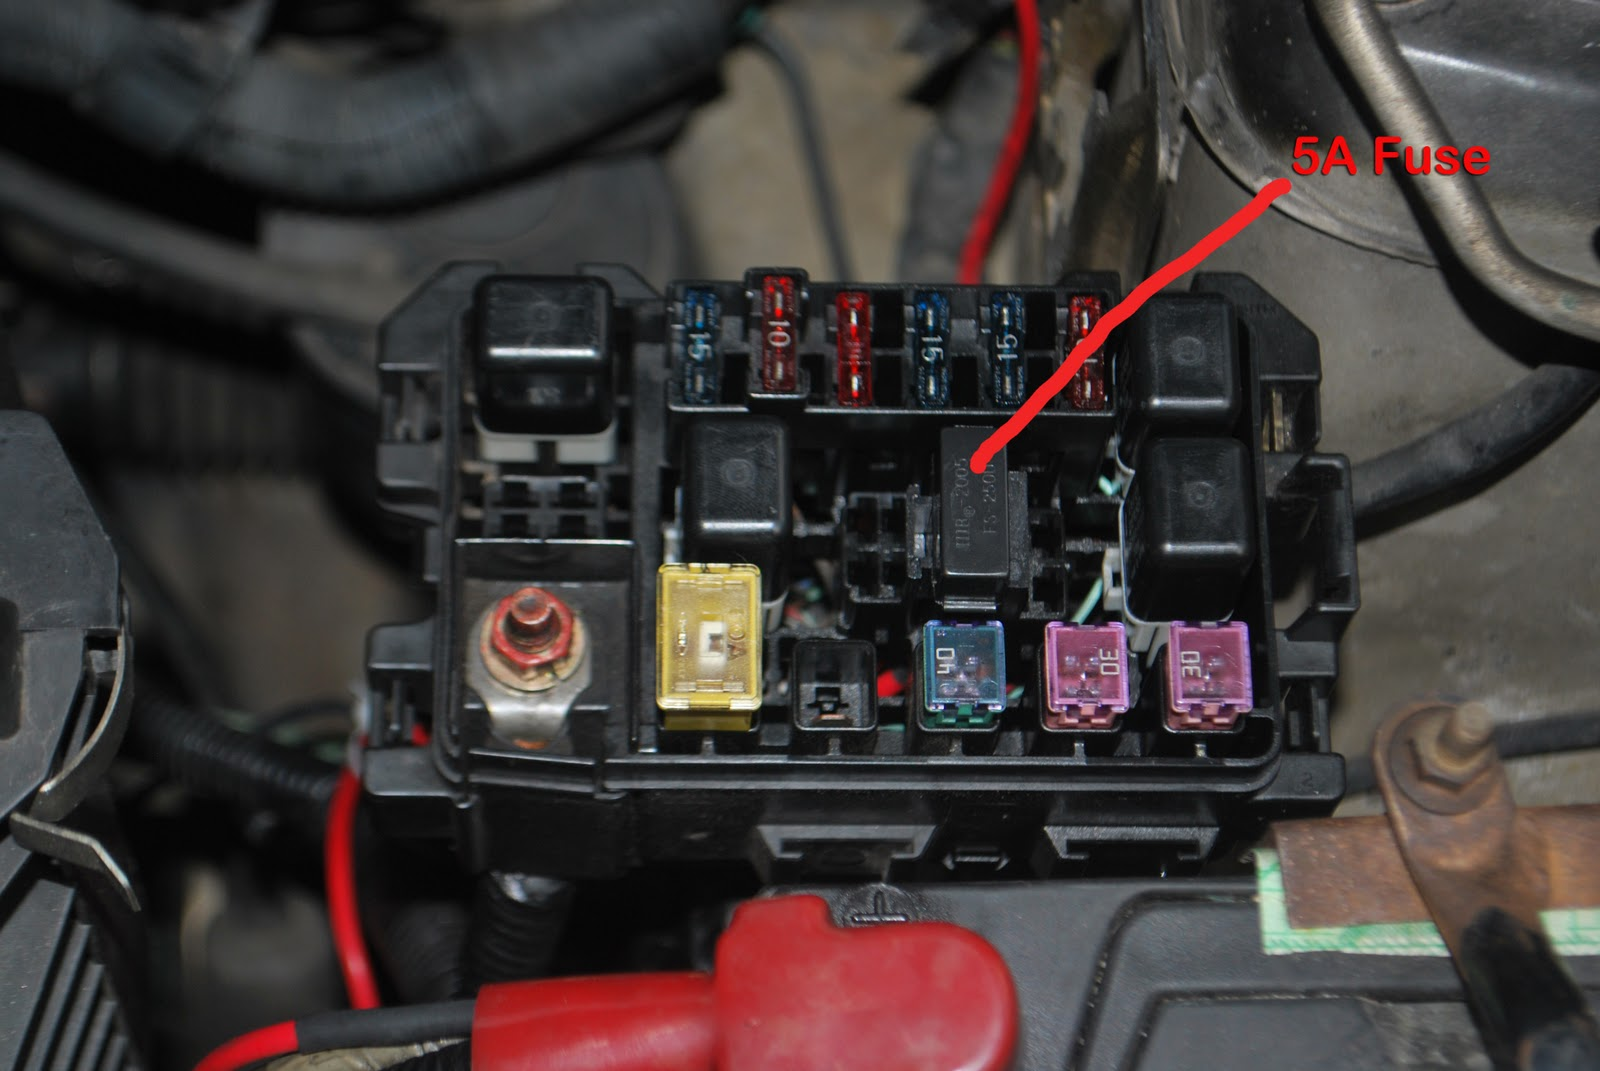 kancil fuse box diagram electrical wiring diagram daihatsu cuore | wiring library 2007 dodge caliber fuse box diagram abs fuse